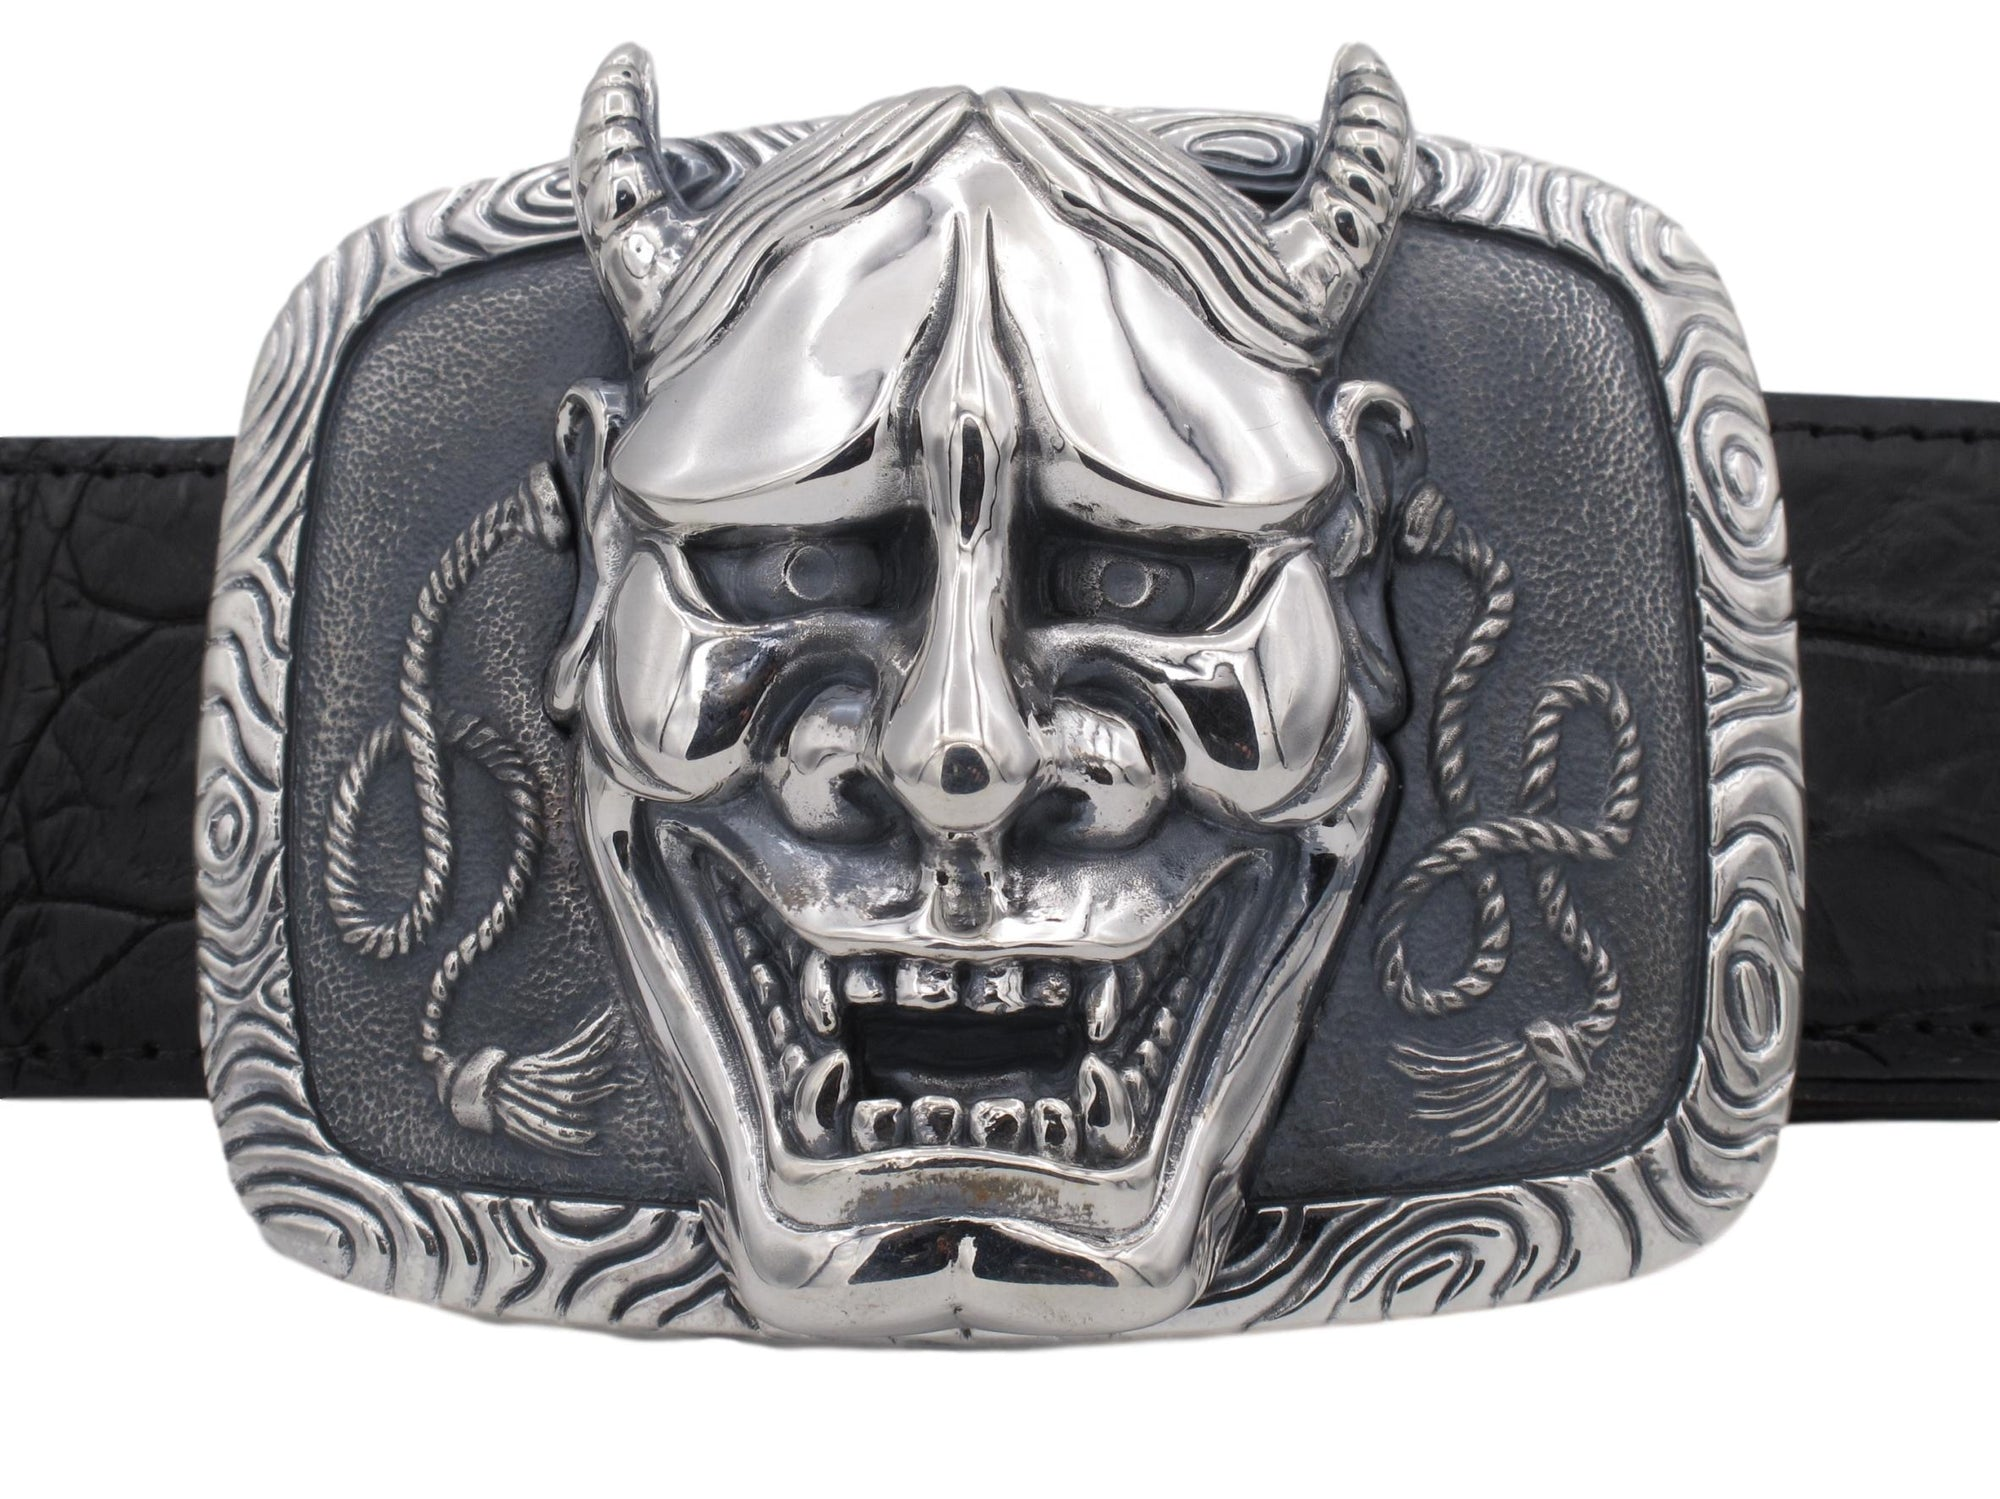 Front on view of the Sterling Hanya Mask Trophy buckle featuring the high relief sculpting of the mask set on a decorated and antiqued base.